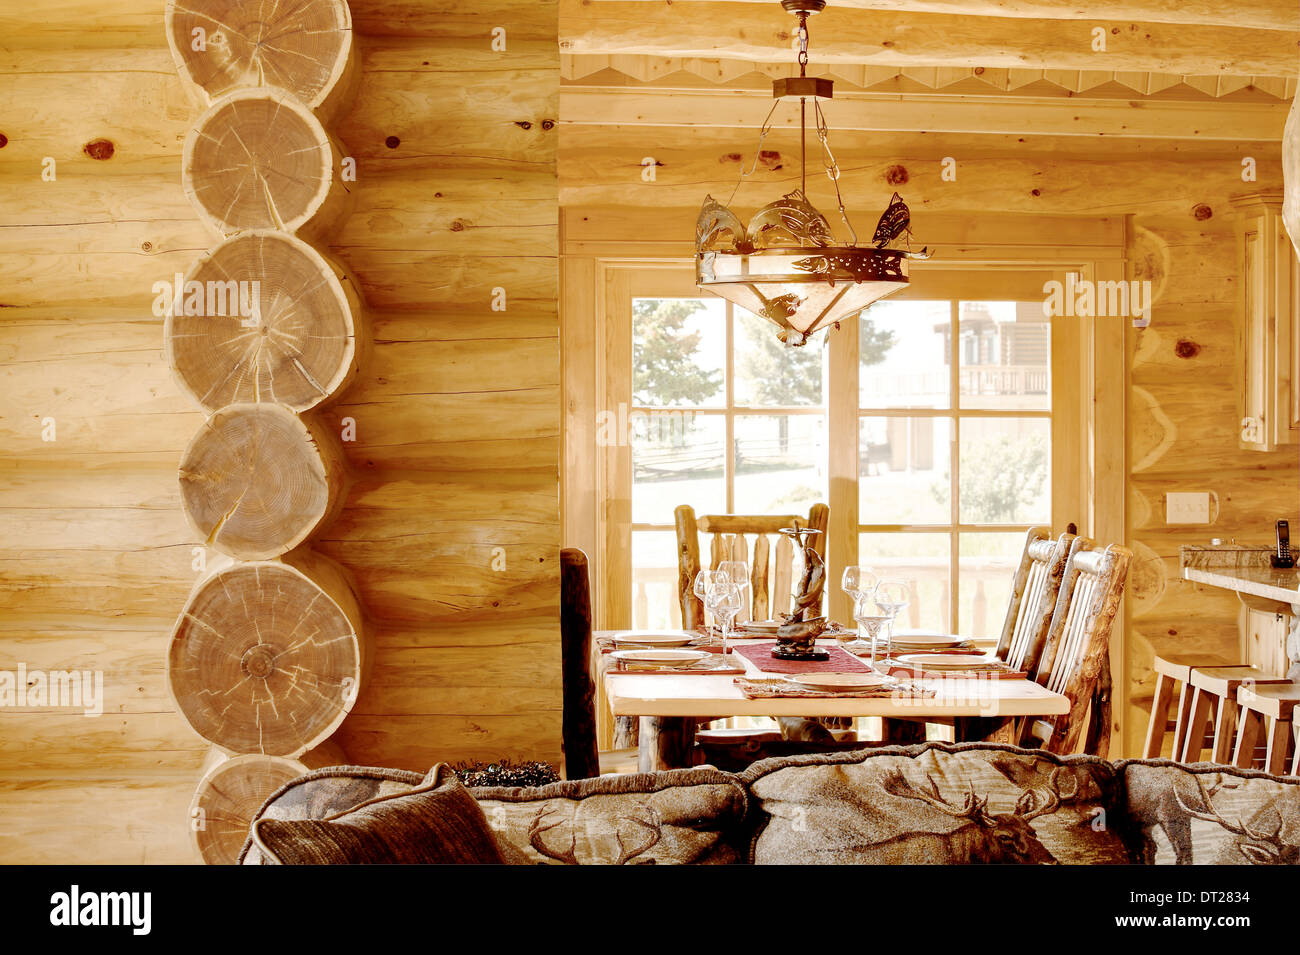 The great room in a modern log cabin, with rustic decor, and furniture. - Stock Image